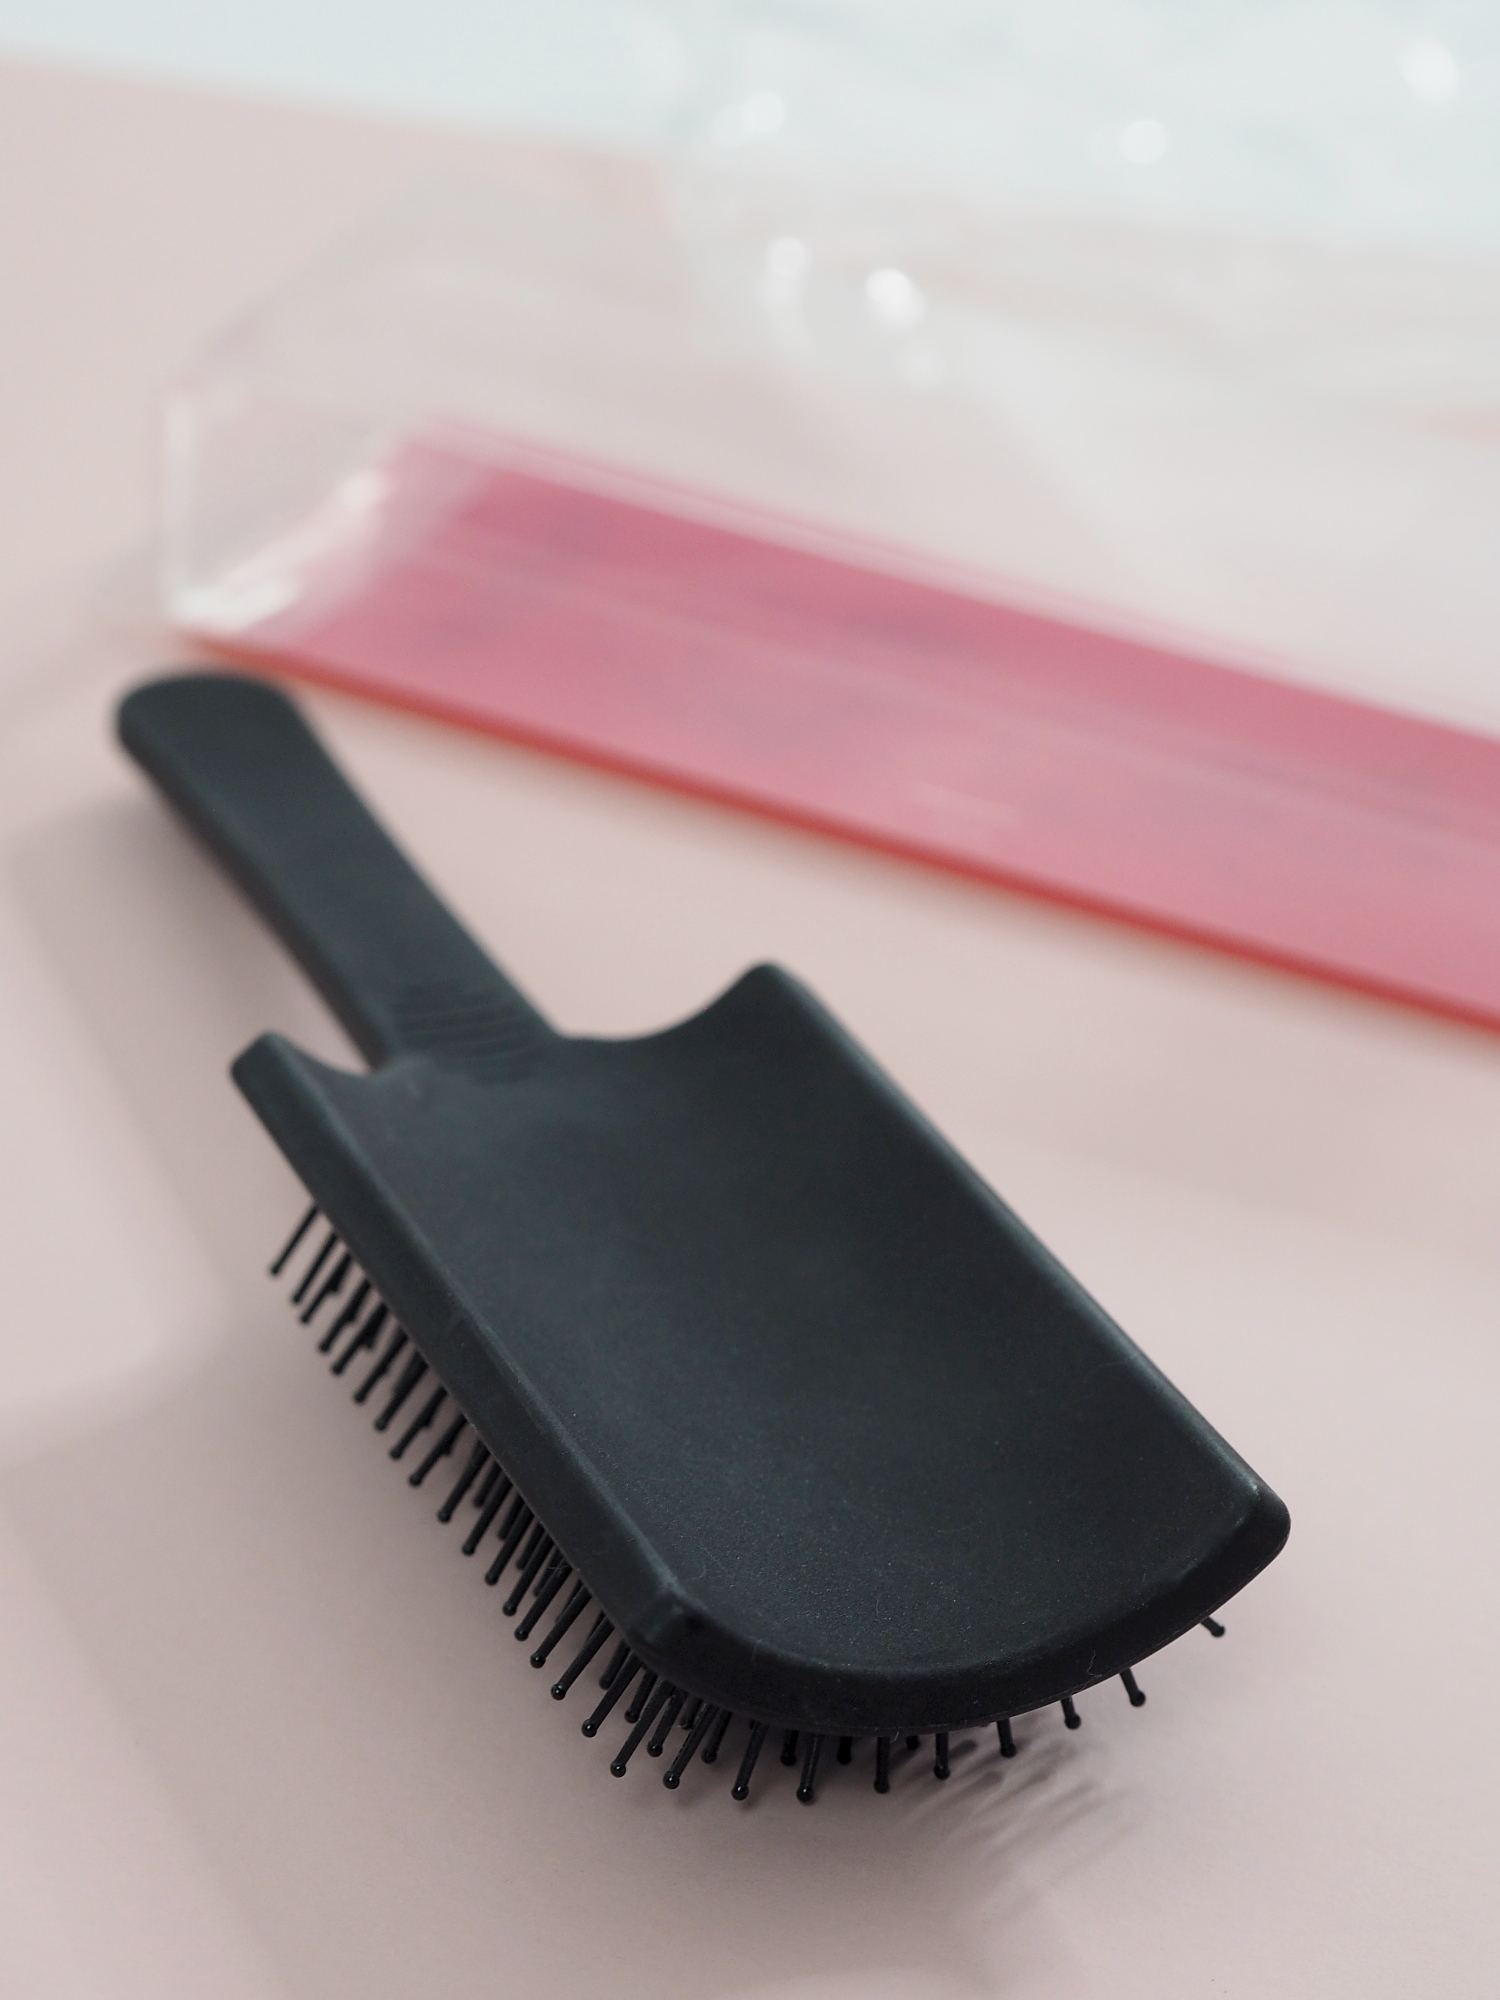 arconic paddle brush